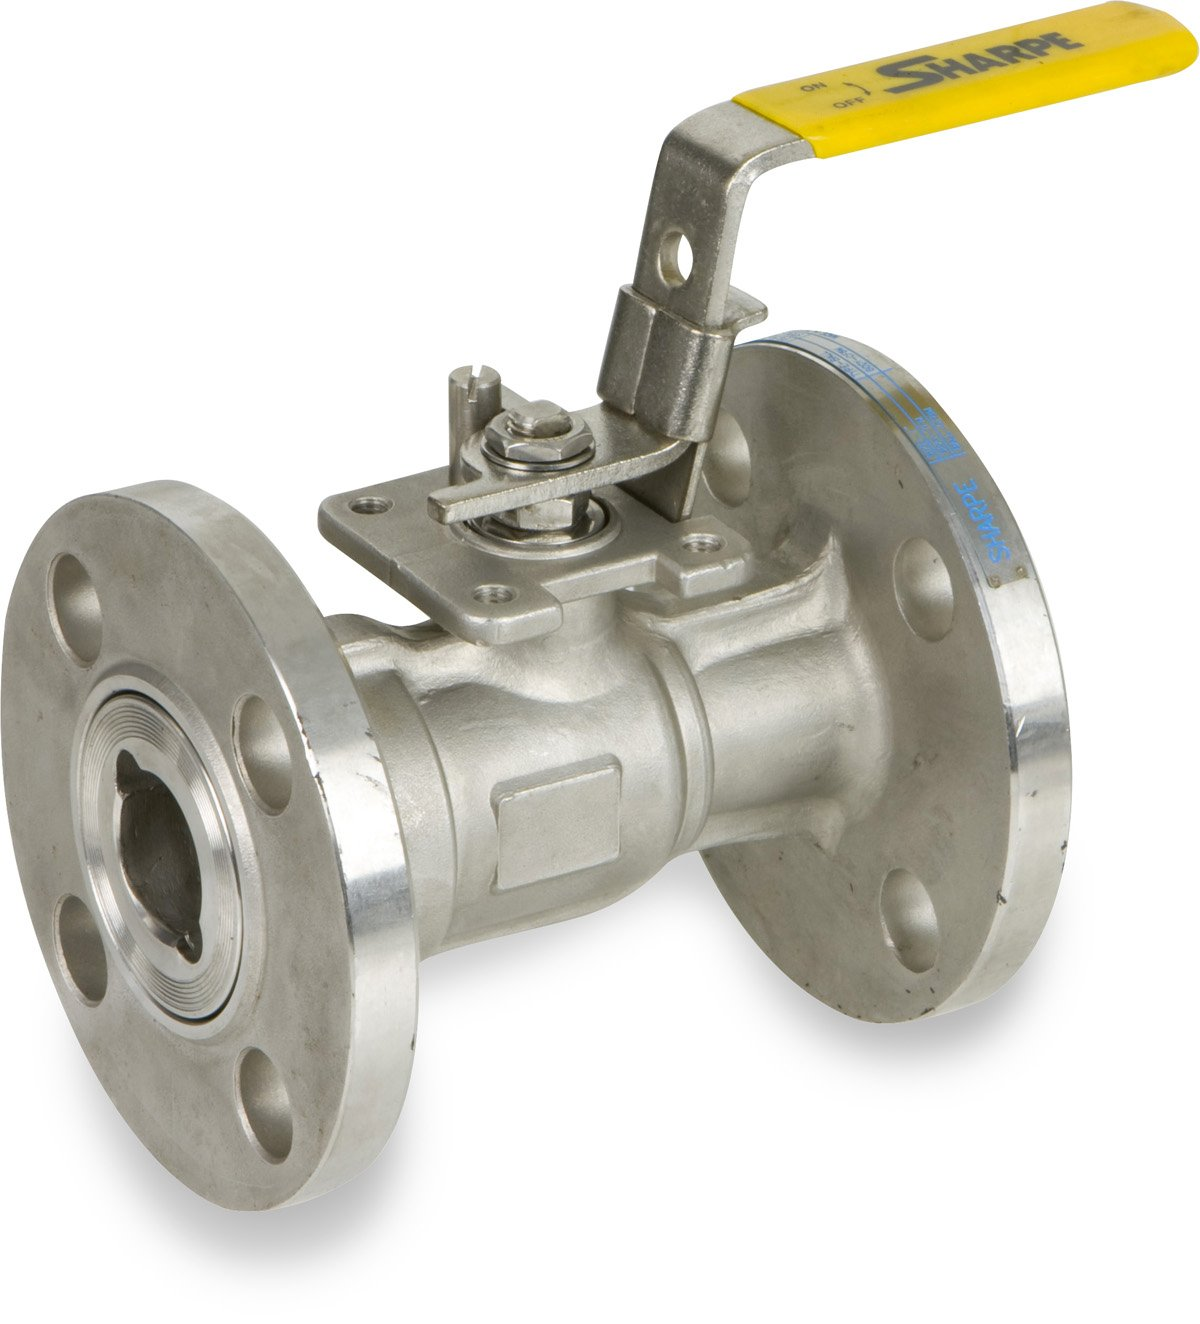 Unibody Lockable Lever Handle Sharpe Valves 54116 Series Stainless Steel 316 Ball Valve 6 Flanged 6 Flanged Smith-Cooper International SV54116M060 Class 150 Inline